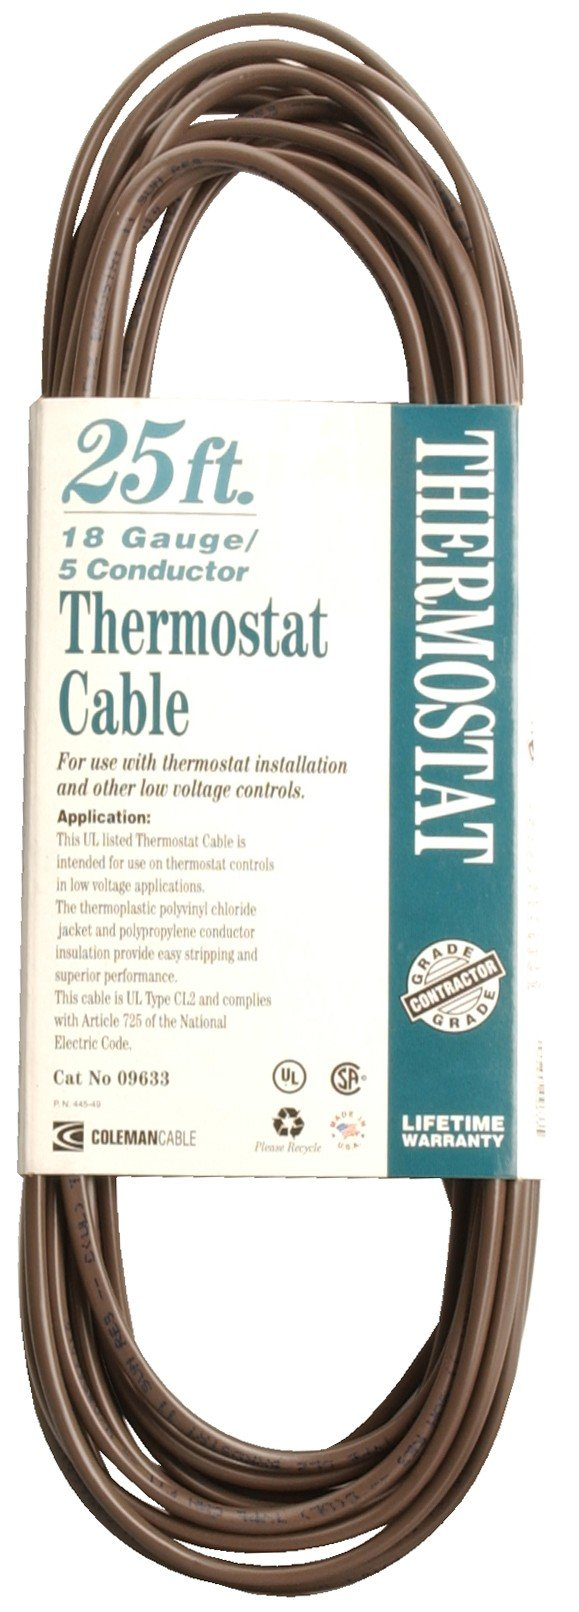 Coleman Cable 09633 CL2 Bulk Thermostat Cable, 18-Gauge 5-Conductor 25-Feet